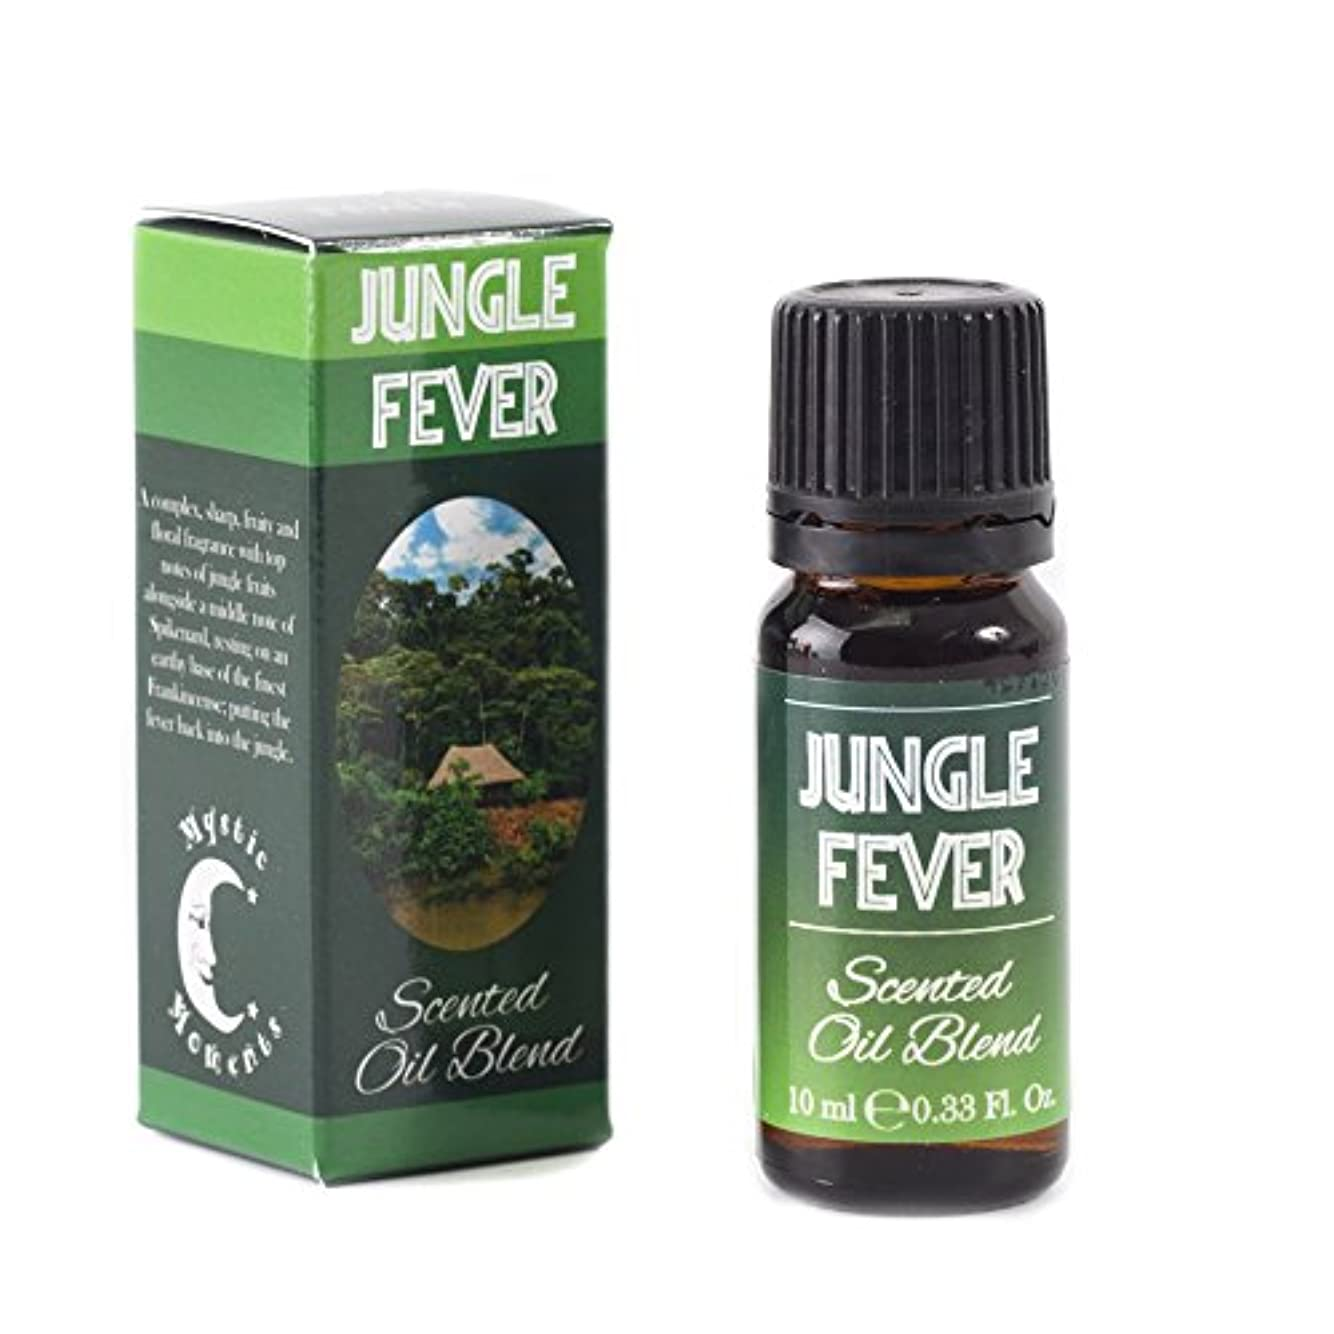 条件付きエチケットこねるMystic Moments | Jungle Fever - Scented Oil Blend - 10ml